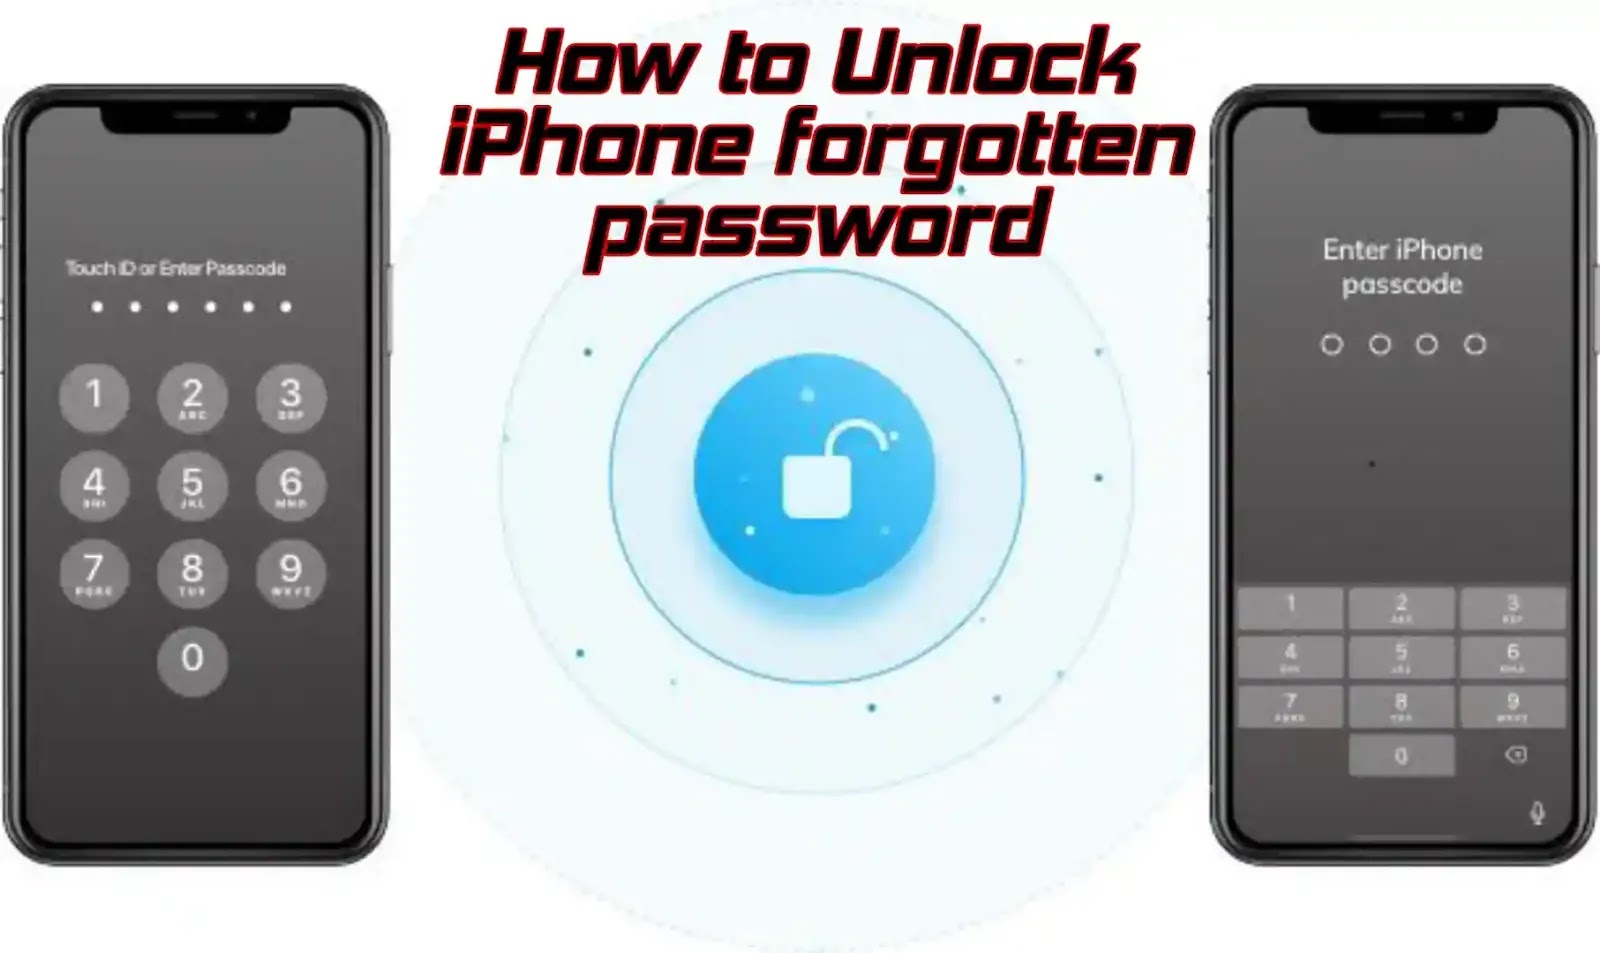 How to unlock an iPhone you've forgotten the password to, even if it's disabled